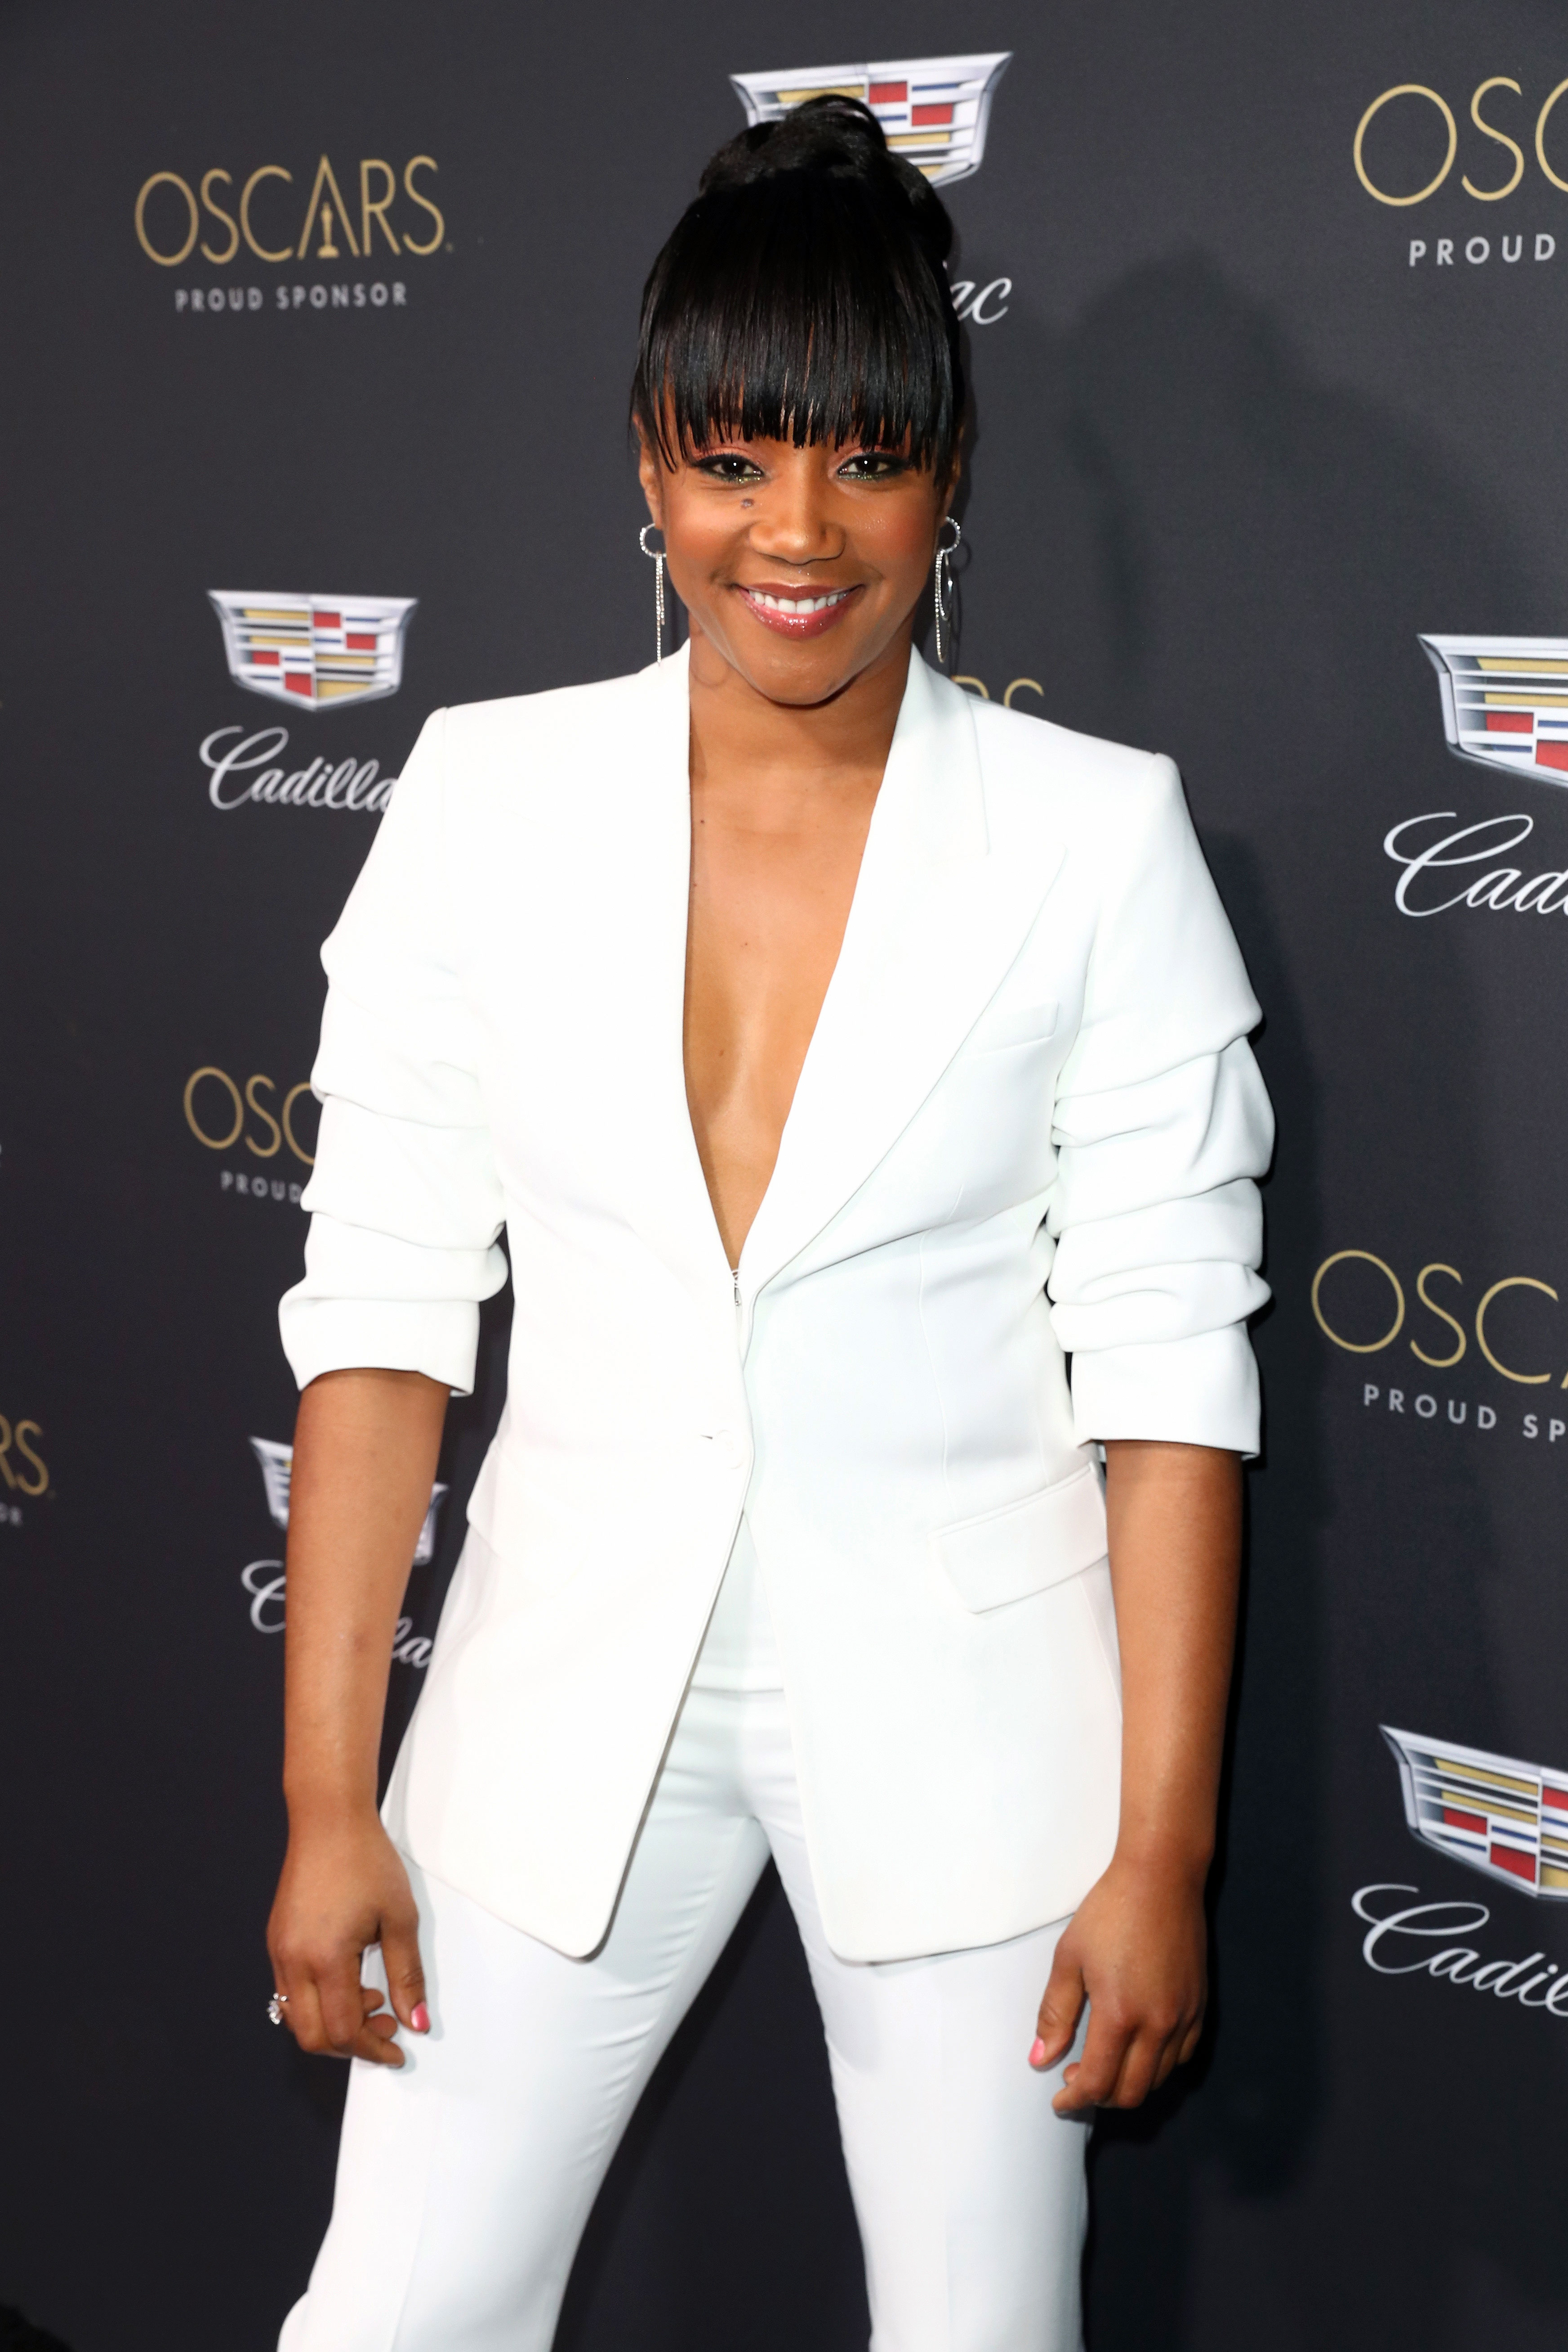 """Tiffany Haddish Cadillac - The Cadillac party was clearly the place to be on Thursday night as the Night School comedian was also in attendance. Haddish """"was laughing and looked like she was having a blast,"""" an insider told Us ."""